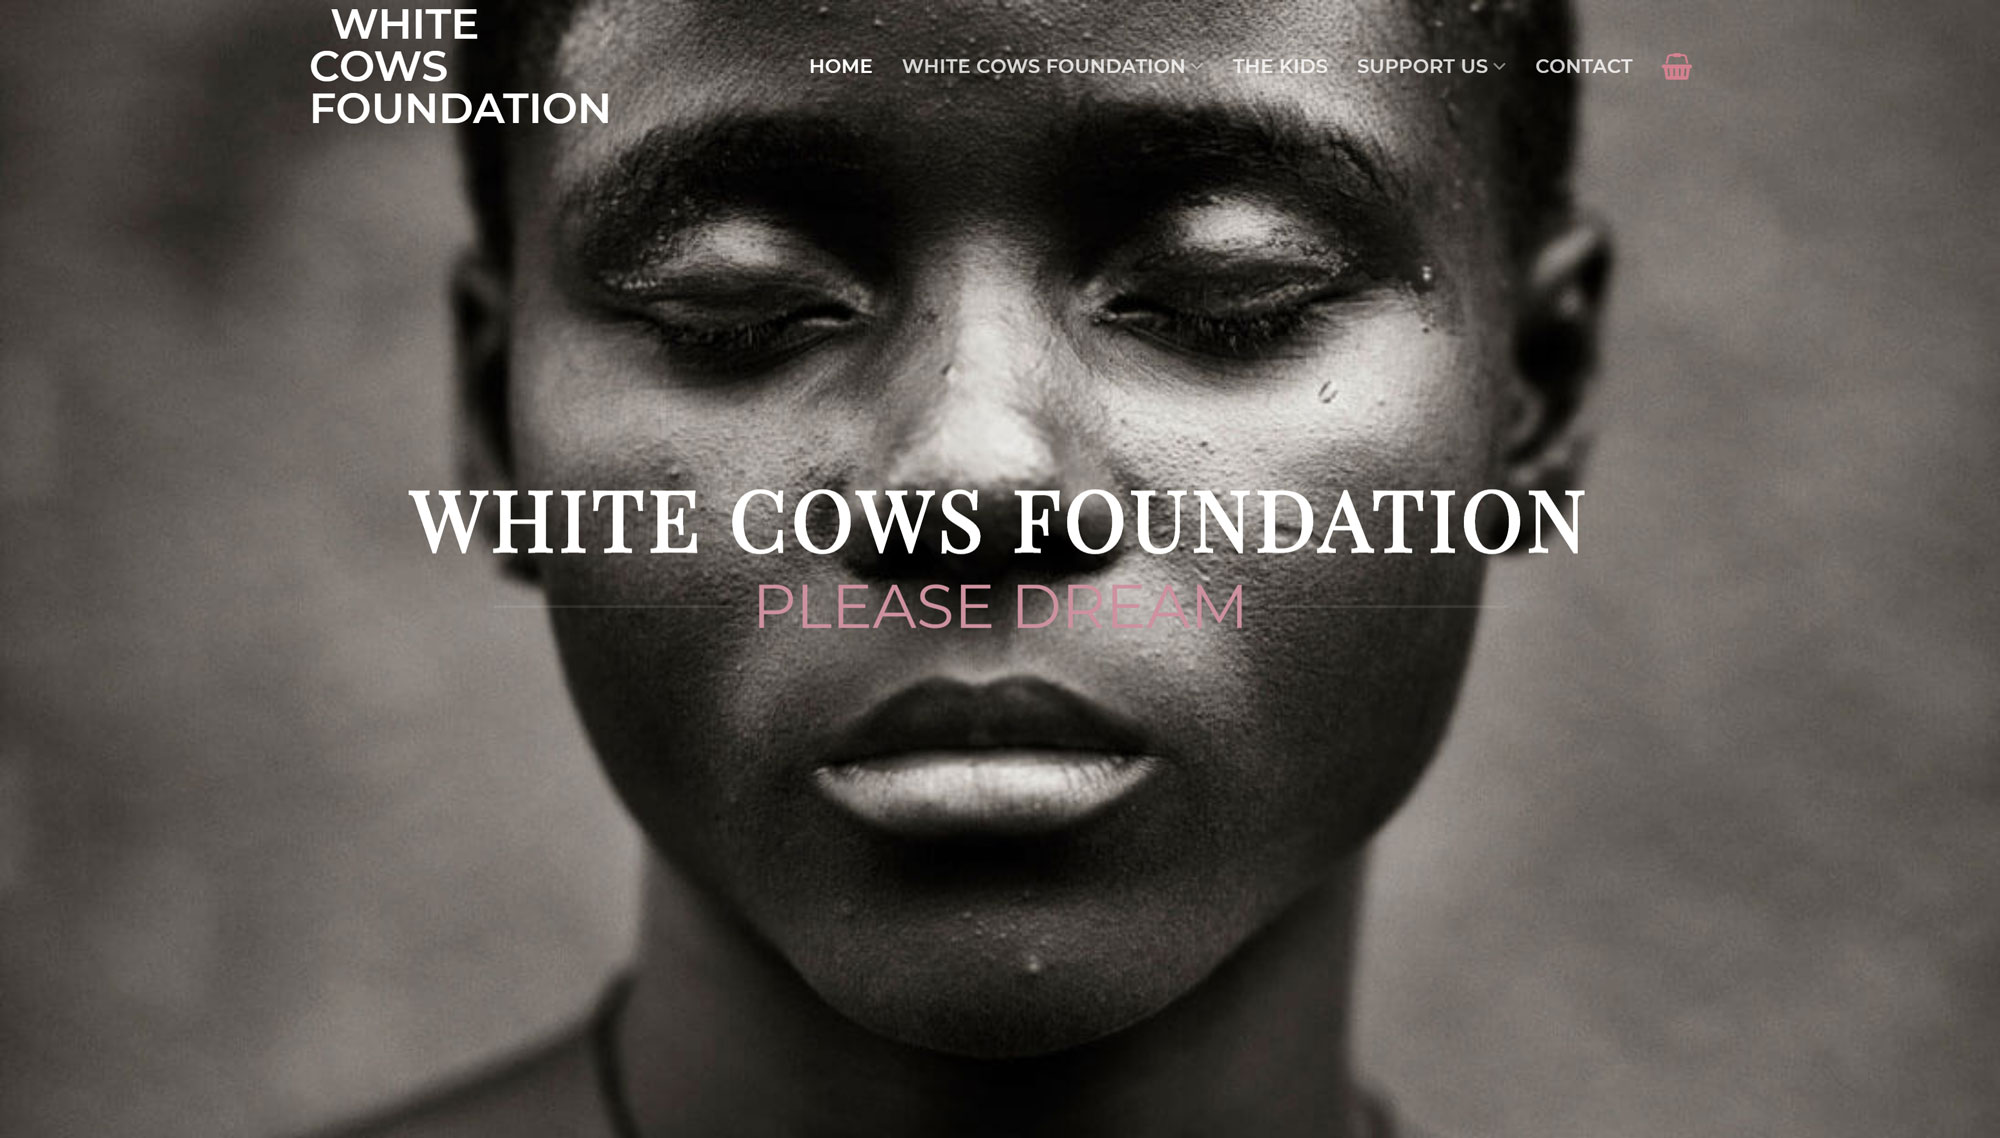 White Cows Foundation